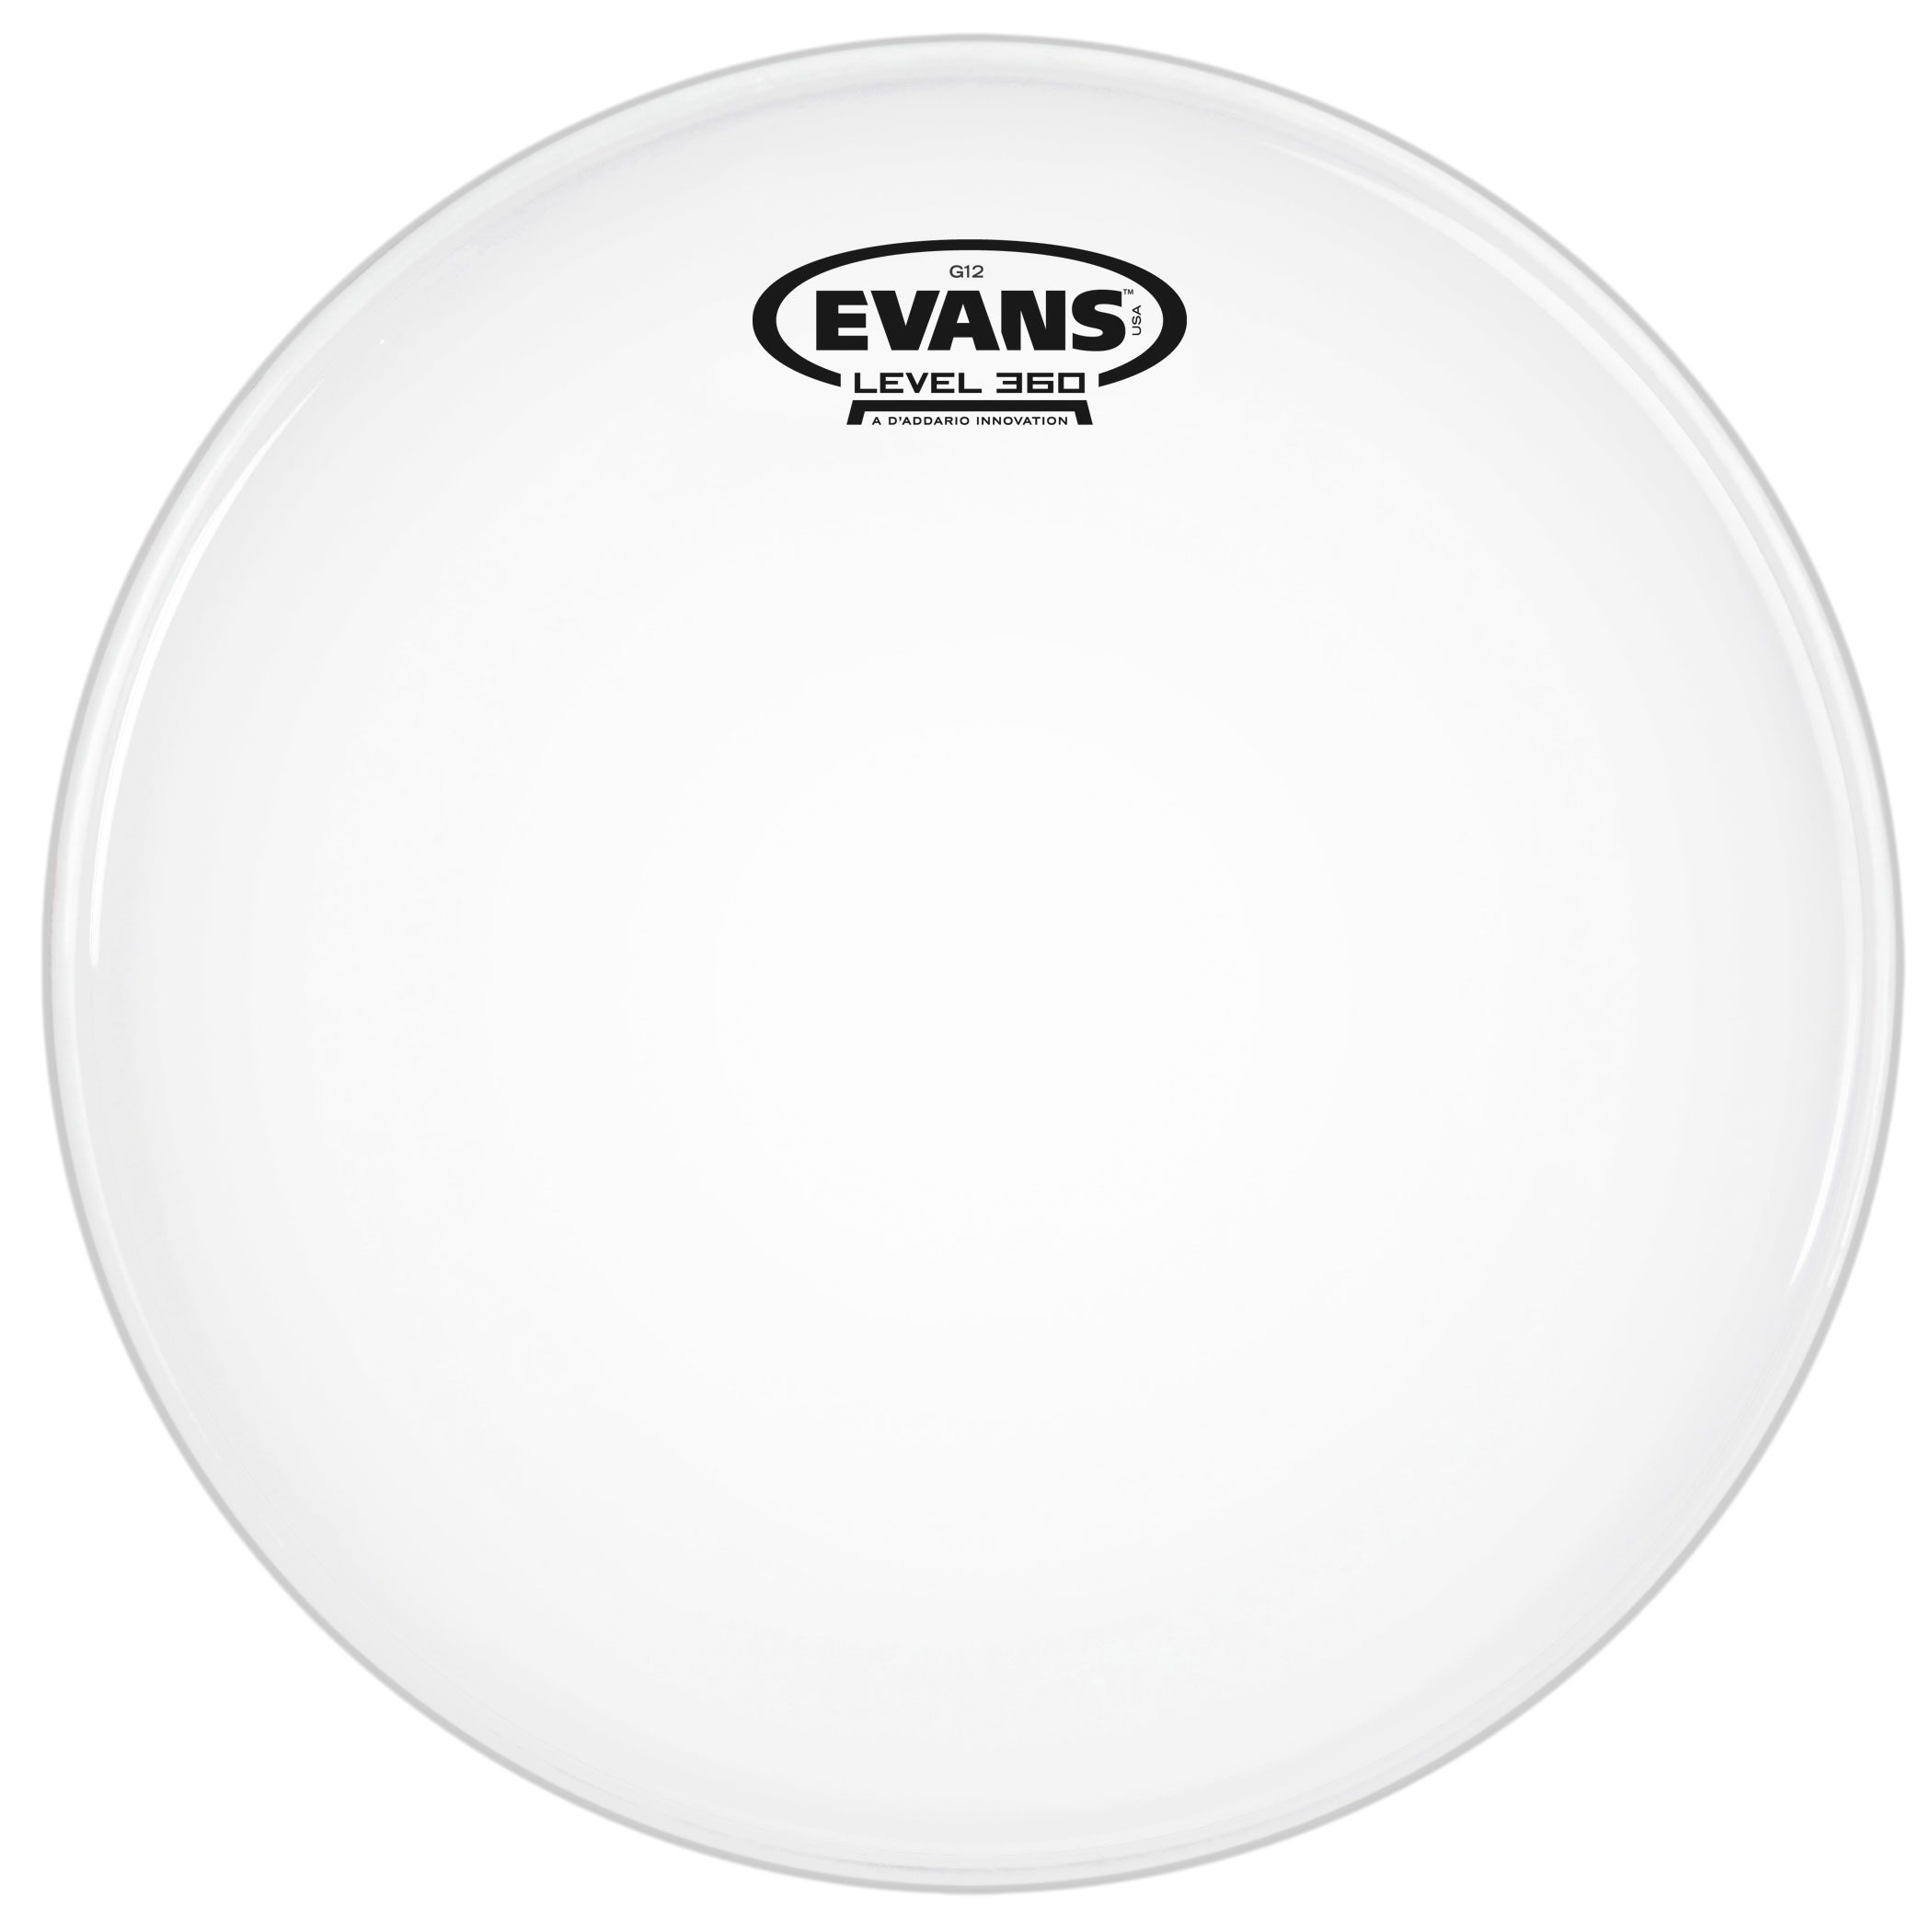 "Evans 13"" G12 Coated Head"